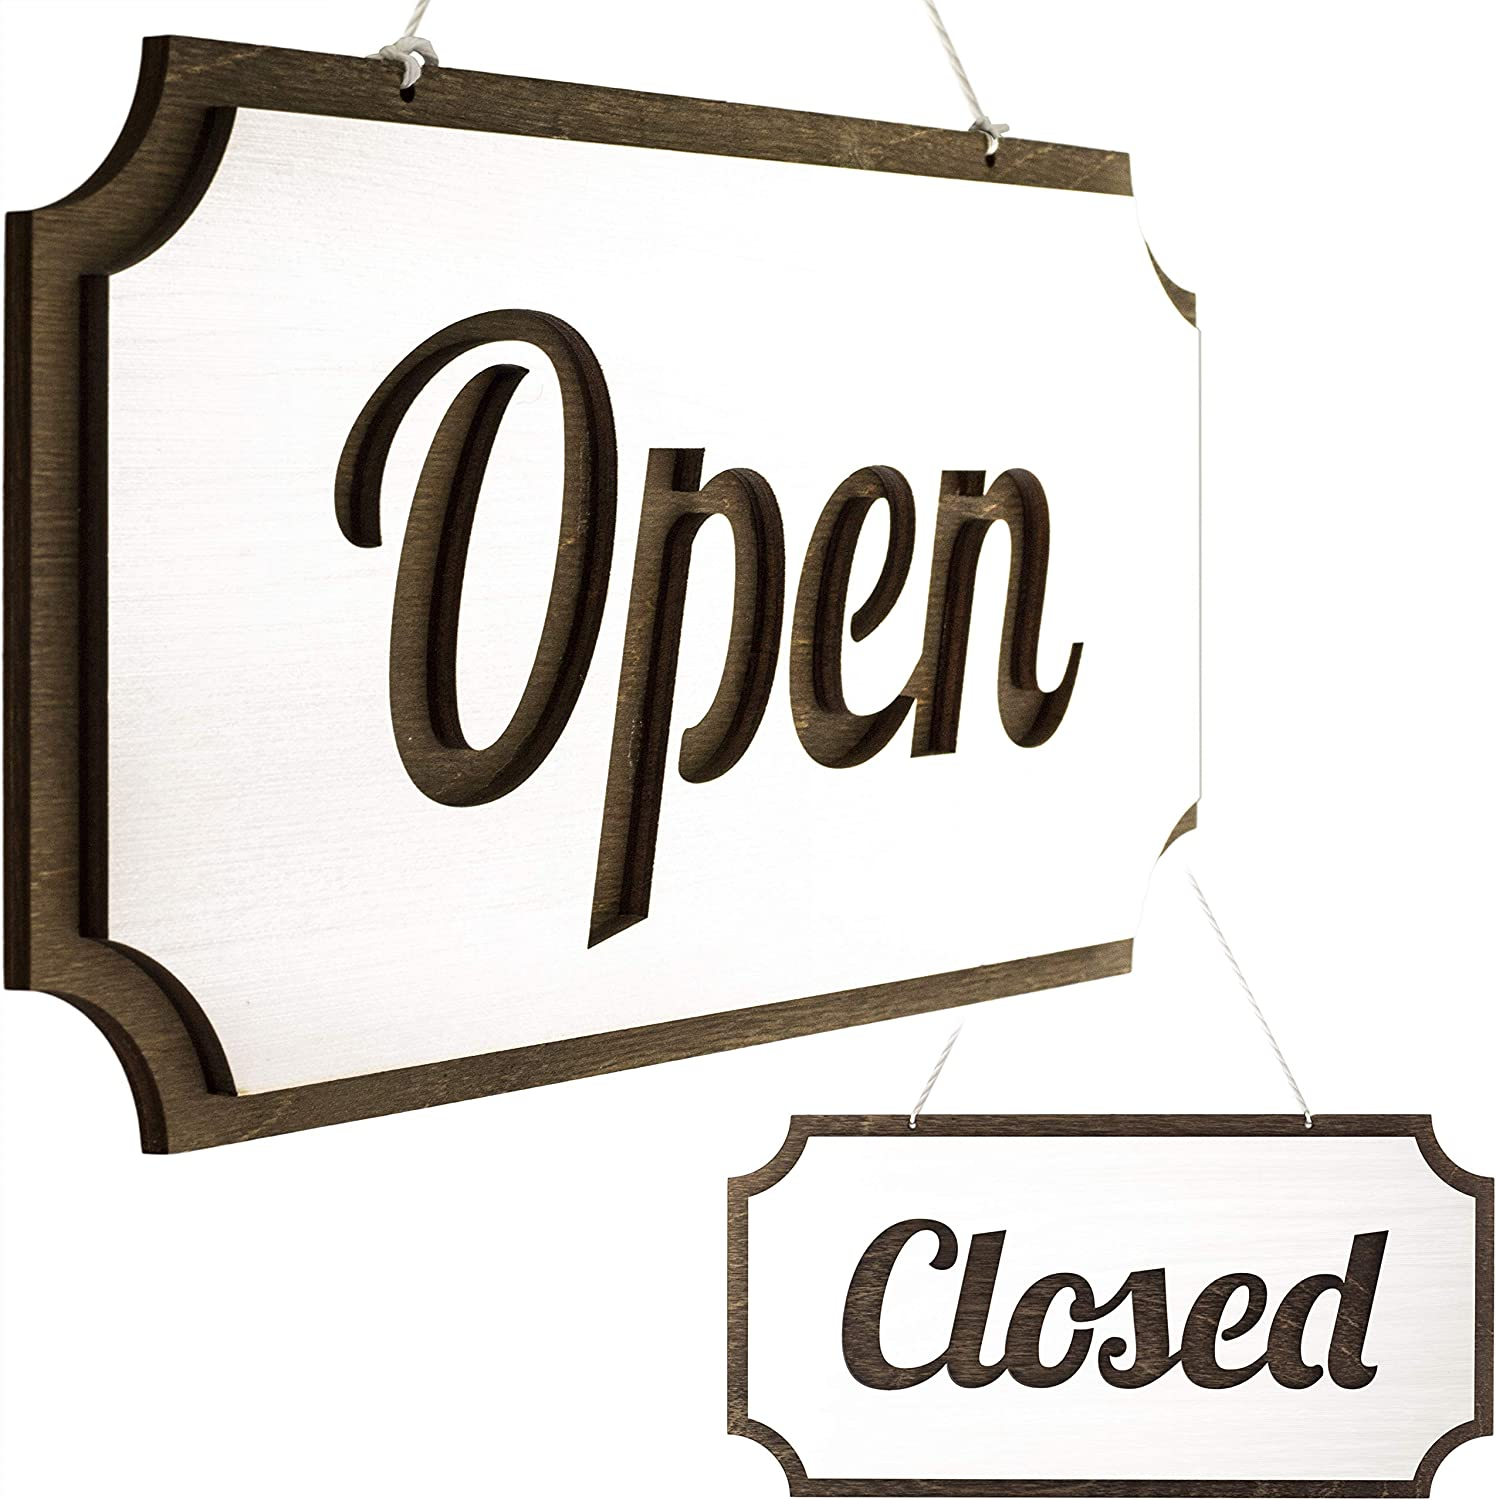 Rustic Wooden Open Closed Sign - Double-Sided Open Sign - Vintage Style Wood Closed Sign - Open and Closed Sign for Business - Decorative Open-Closed Sign 12 х 6 Inches